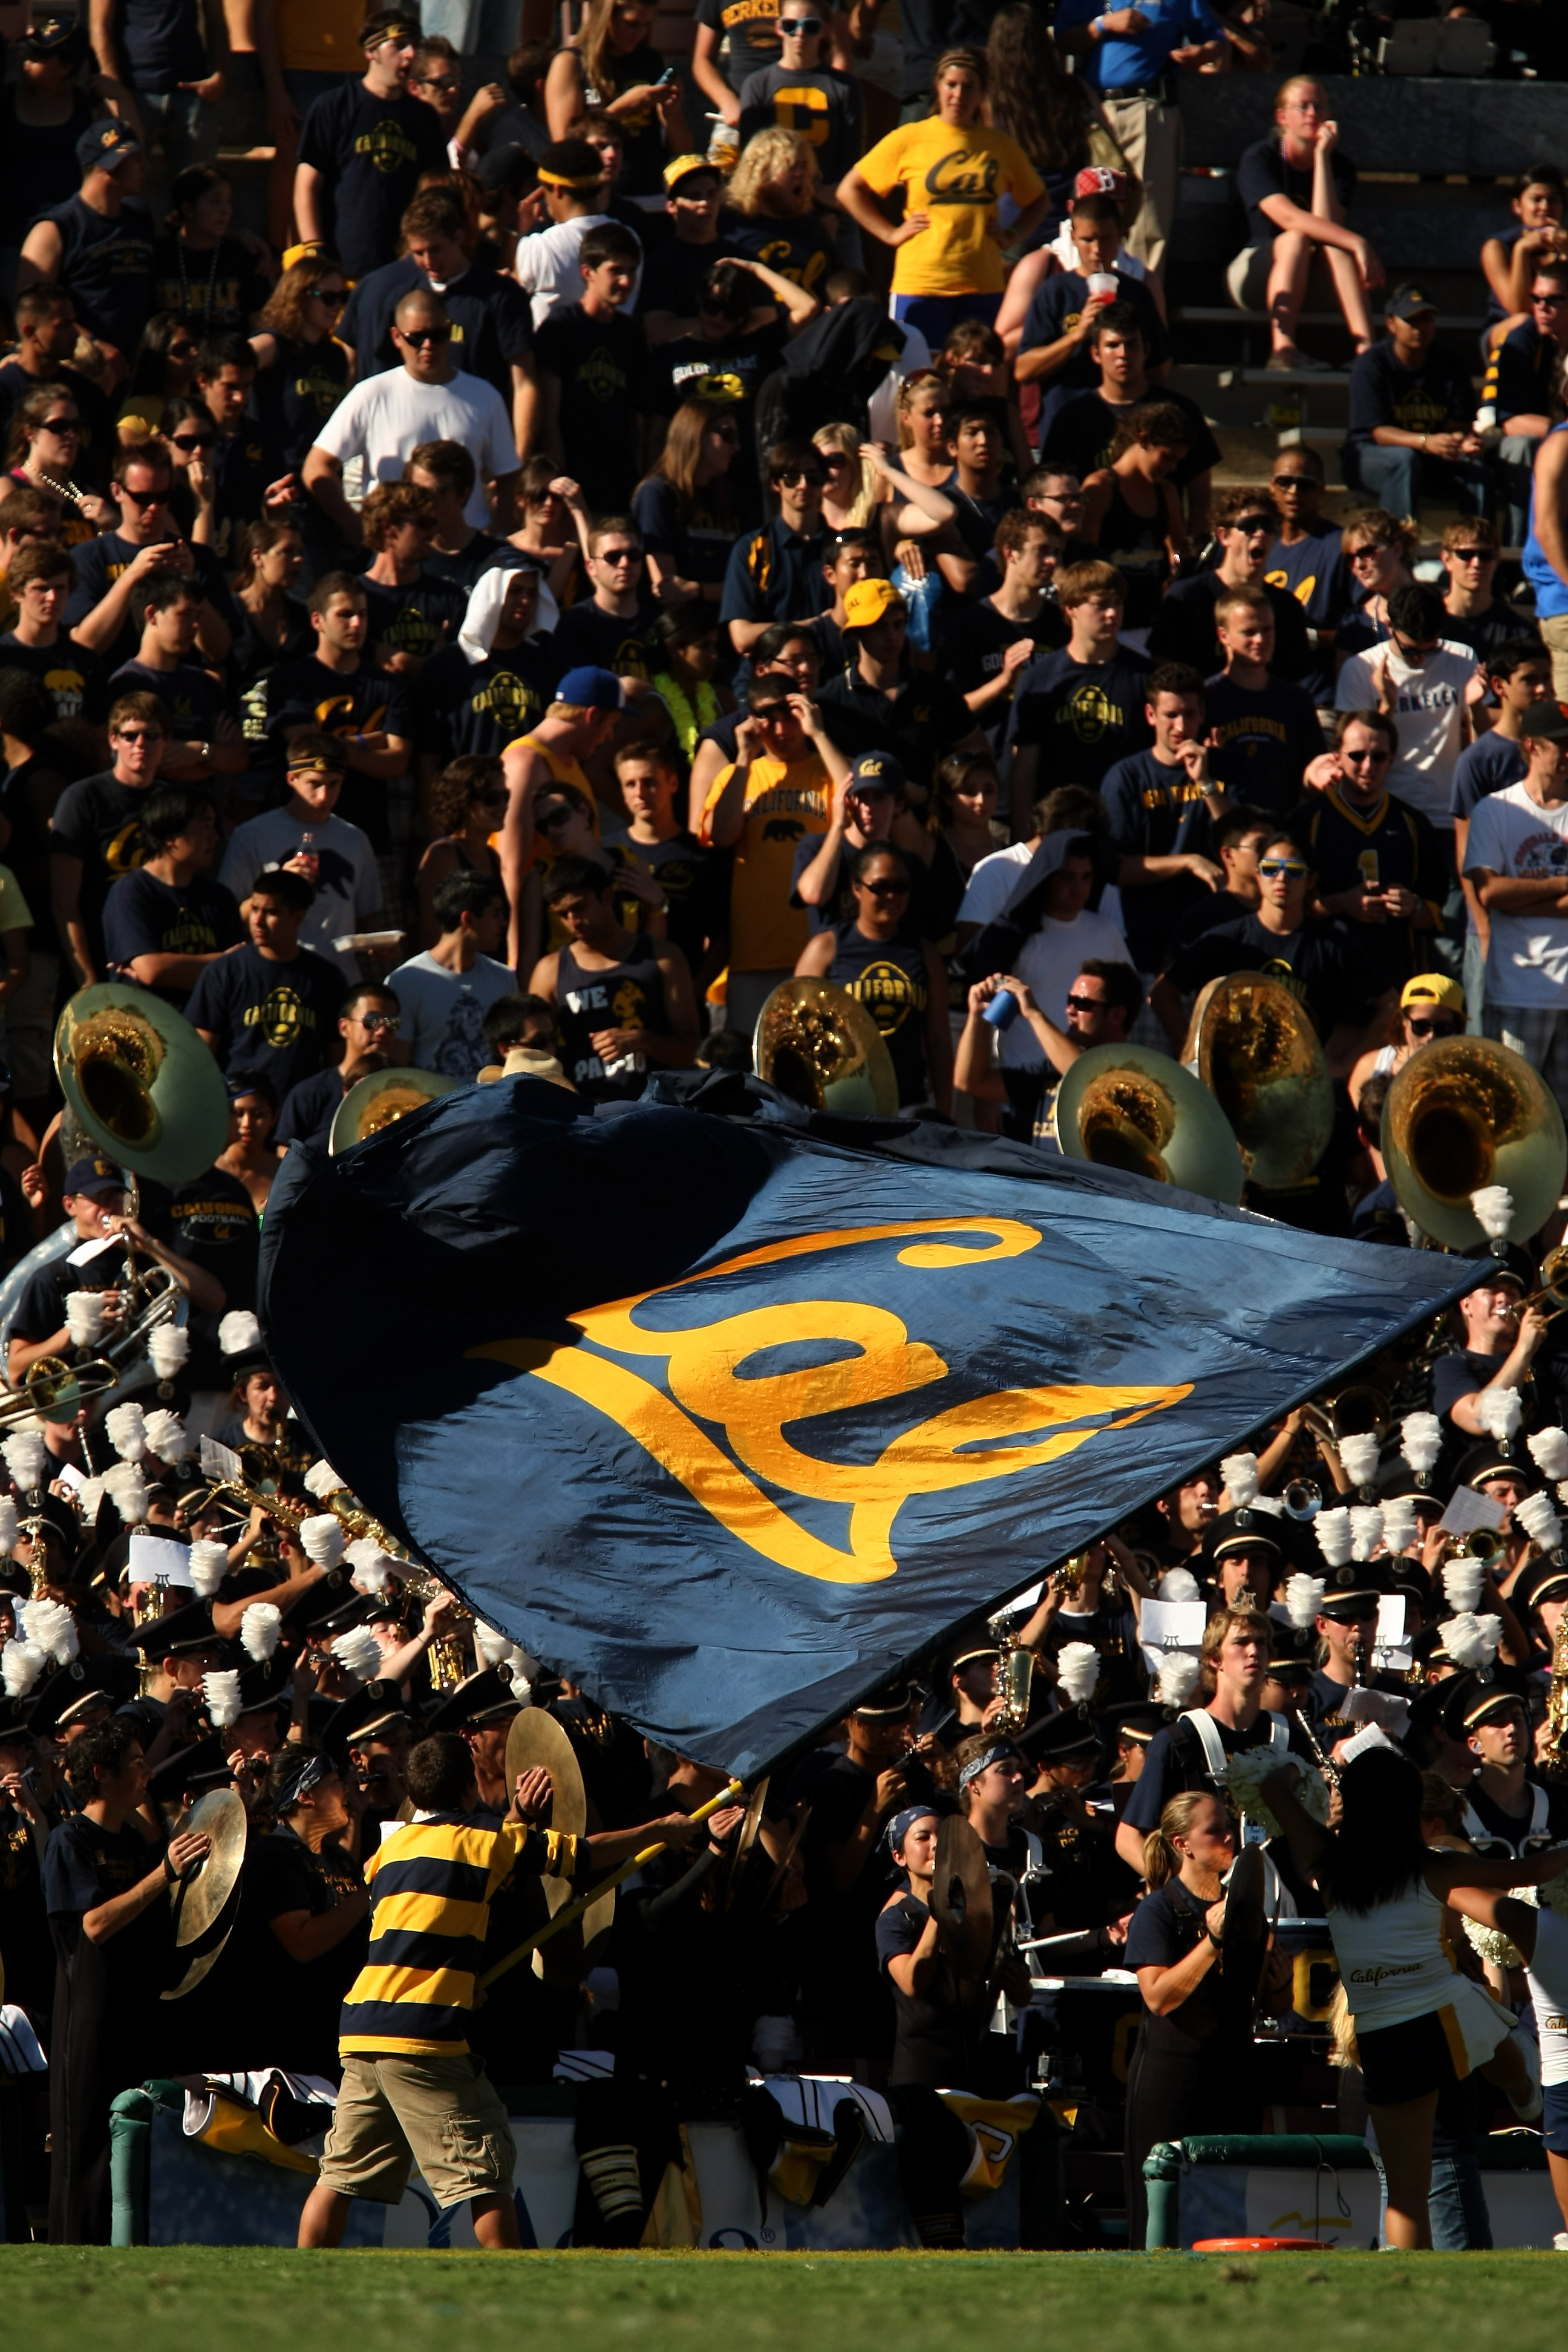 PASADENA, CA - OCTOBER 17:  A California Golden Bears cheerleader waves a flag in front of the Cal band and visitor's section in the game with the UCLA Bruins on October 17, 2009 at the Rose Bowl in Pasadena, California.   Cal won 45-26.  (Photo by Stephe